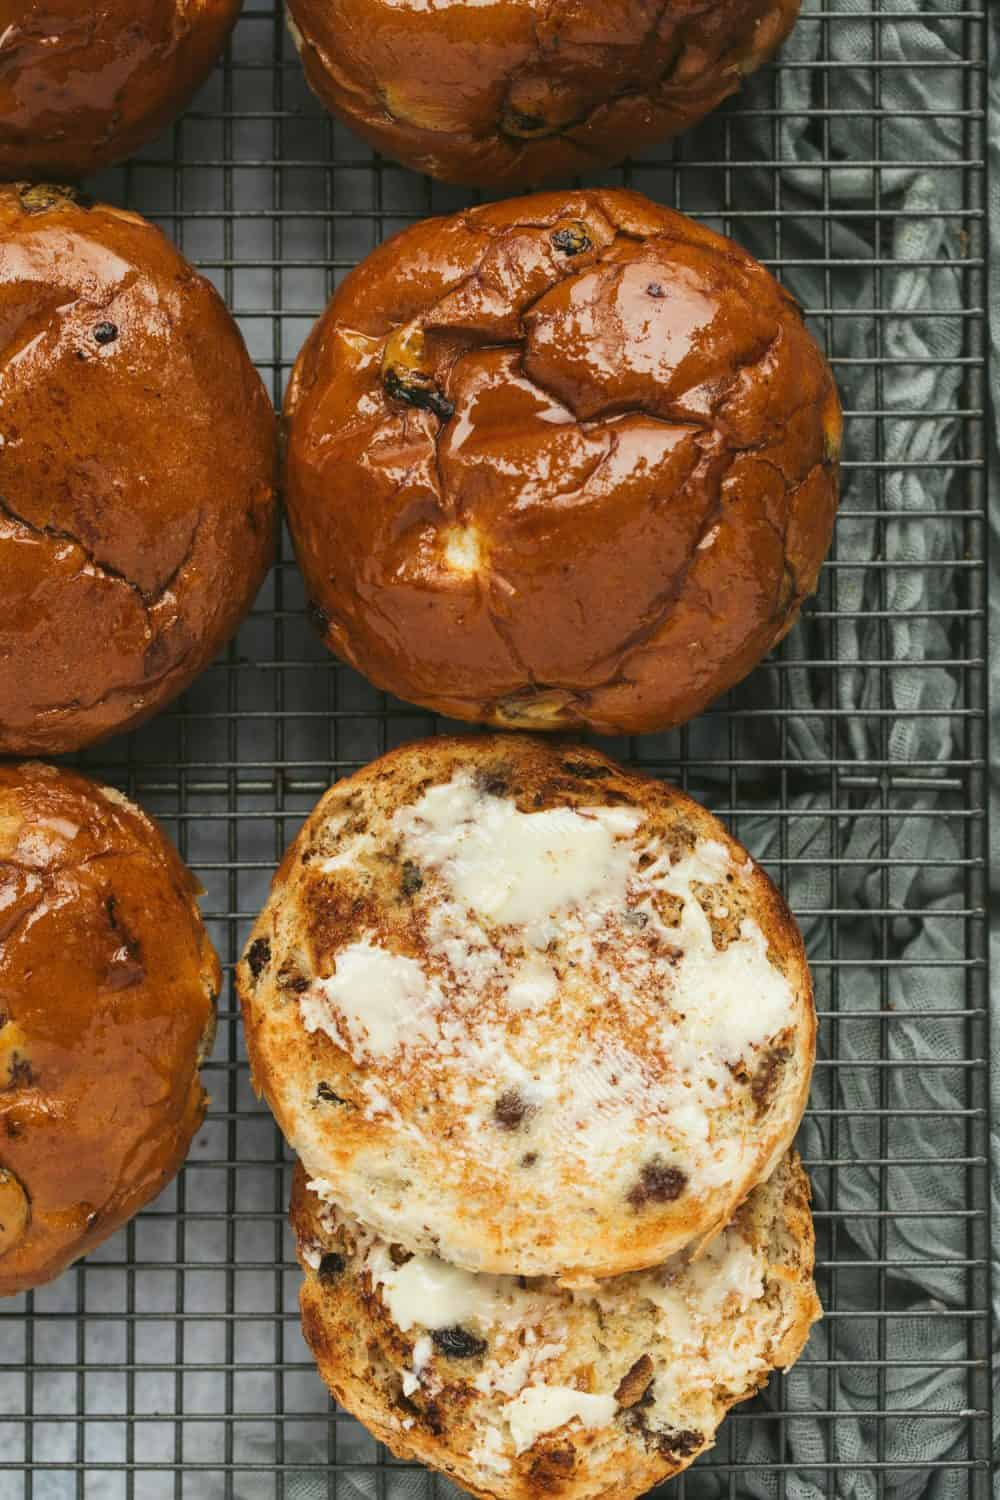 A toasted teacake spread with butter next to freshly baked teacakes.